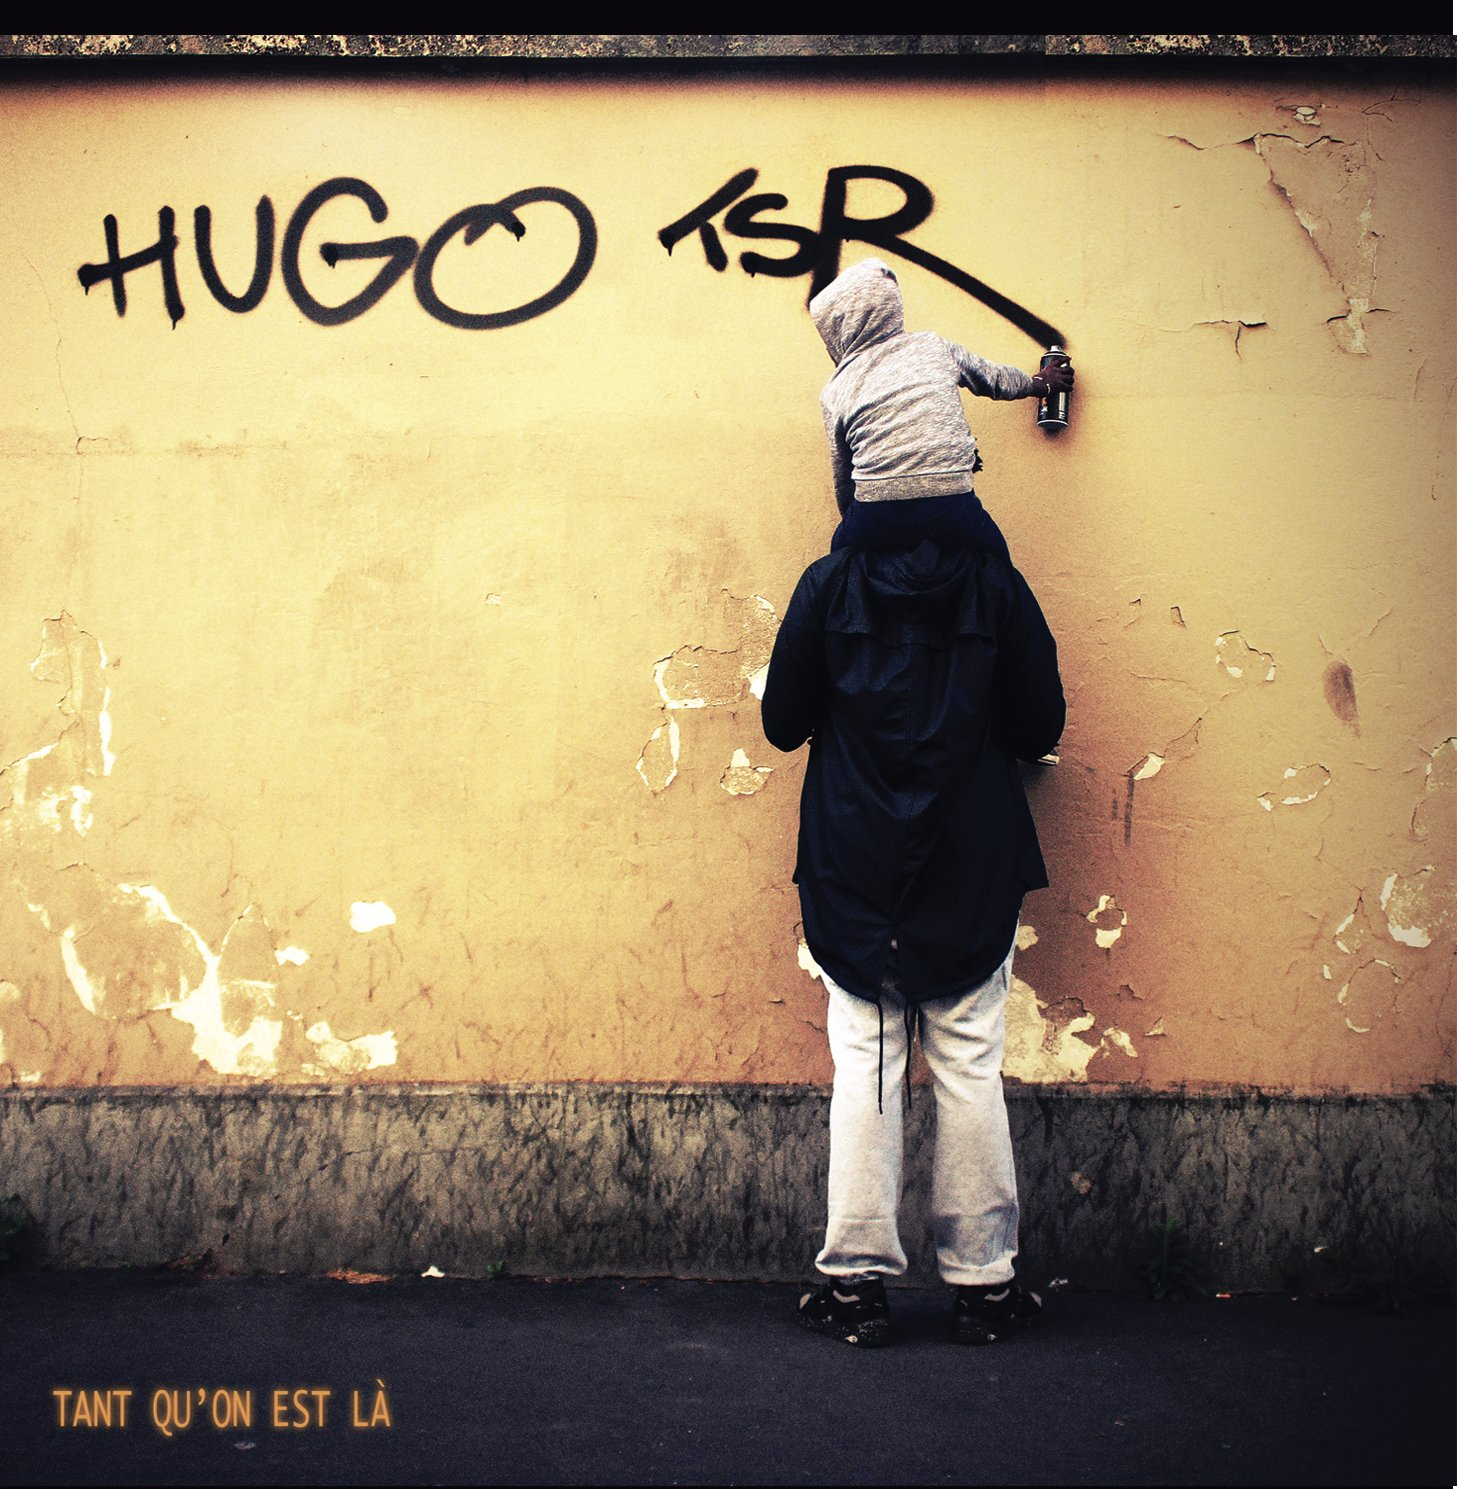 album hugo tsr flaque de samples